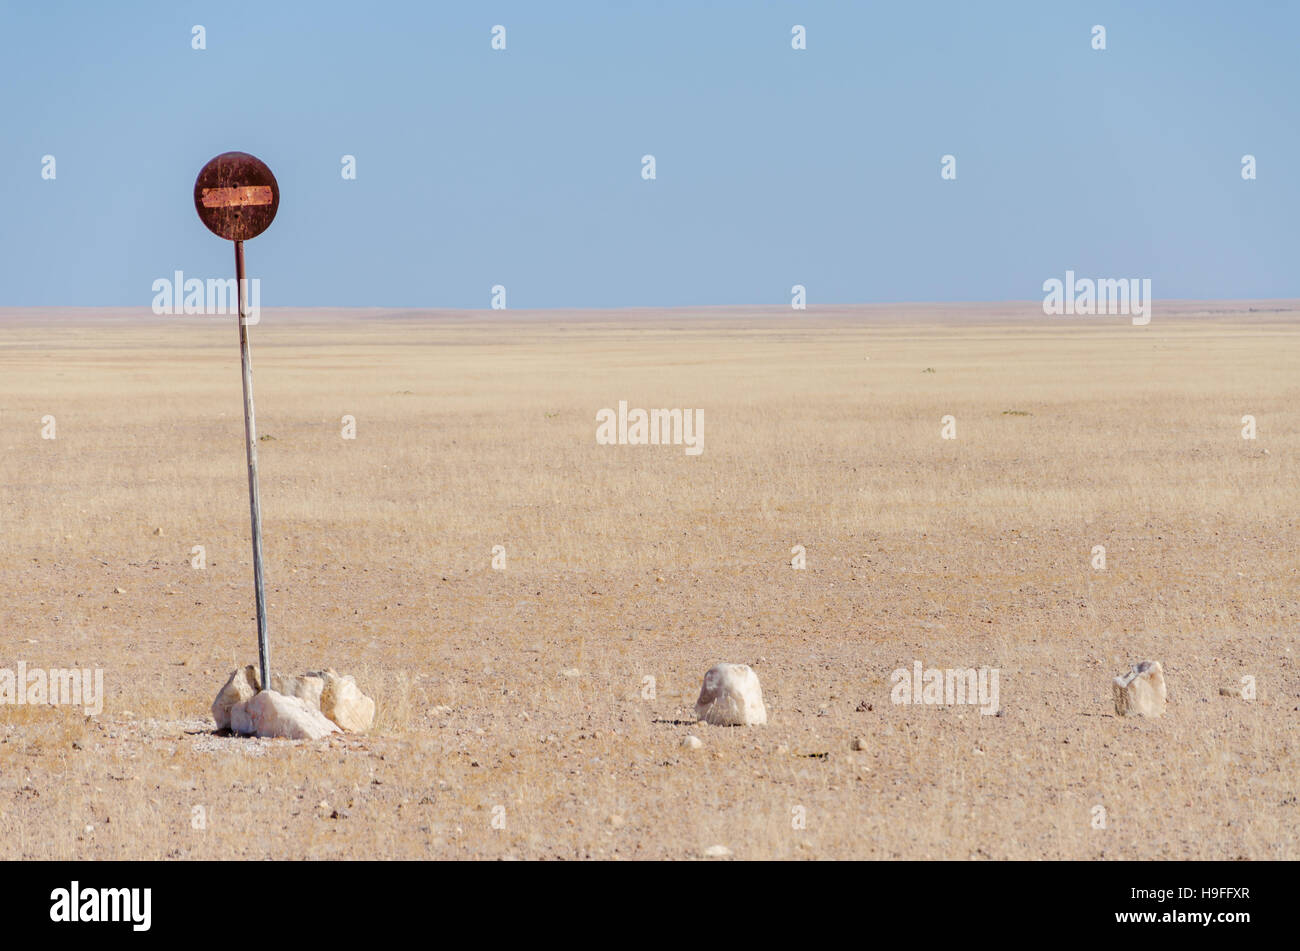 No entry or passage prohibited sign in the middle of the Namib Desert isolated in front of blue sky - Stock Image